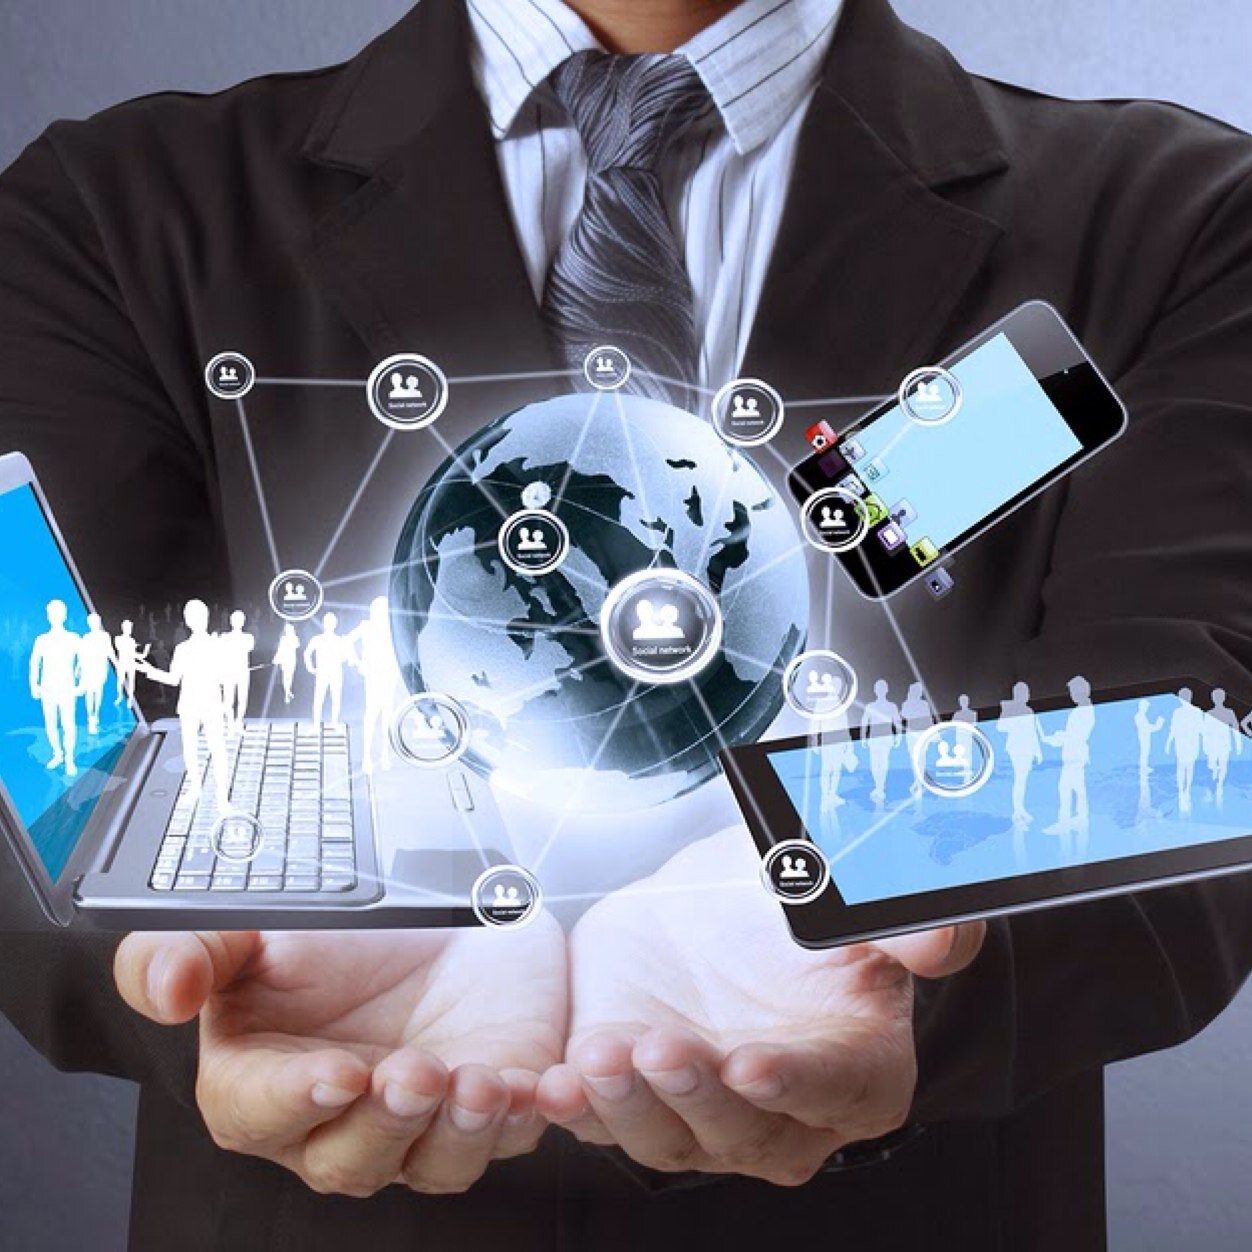 Customers more engaged with their finances as Digital Revolution takes hold